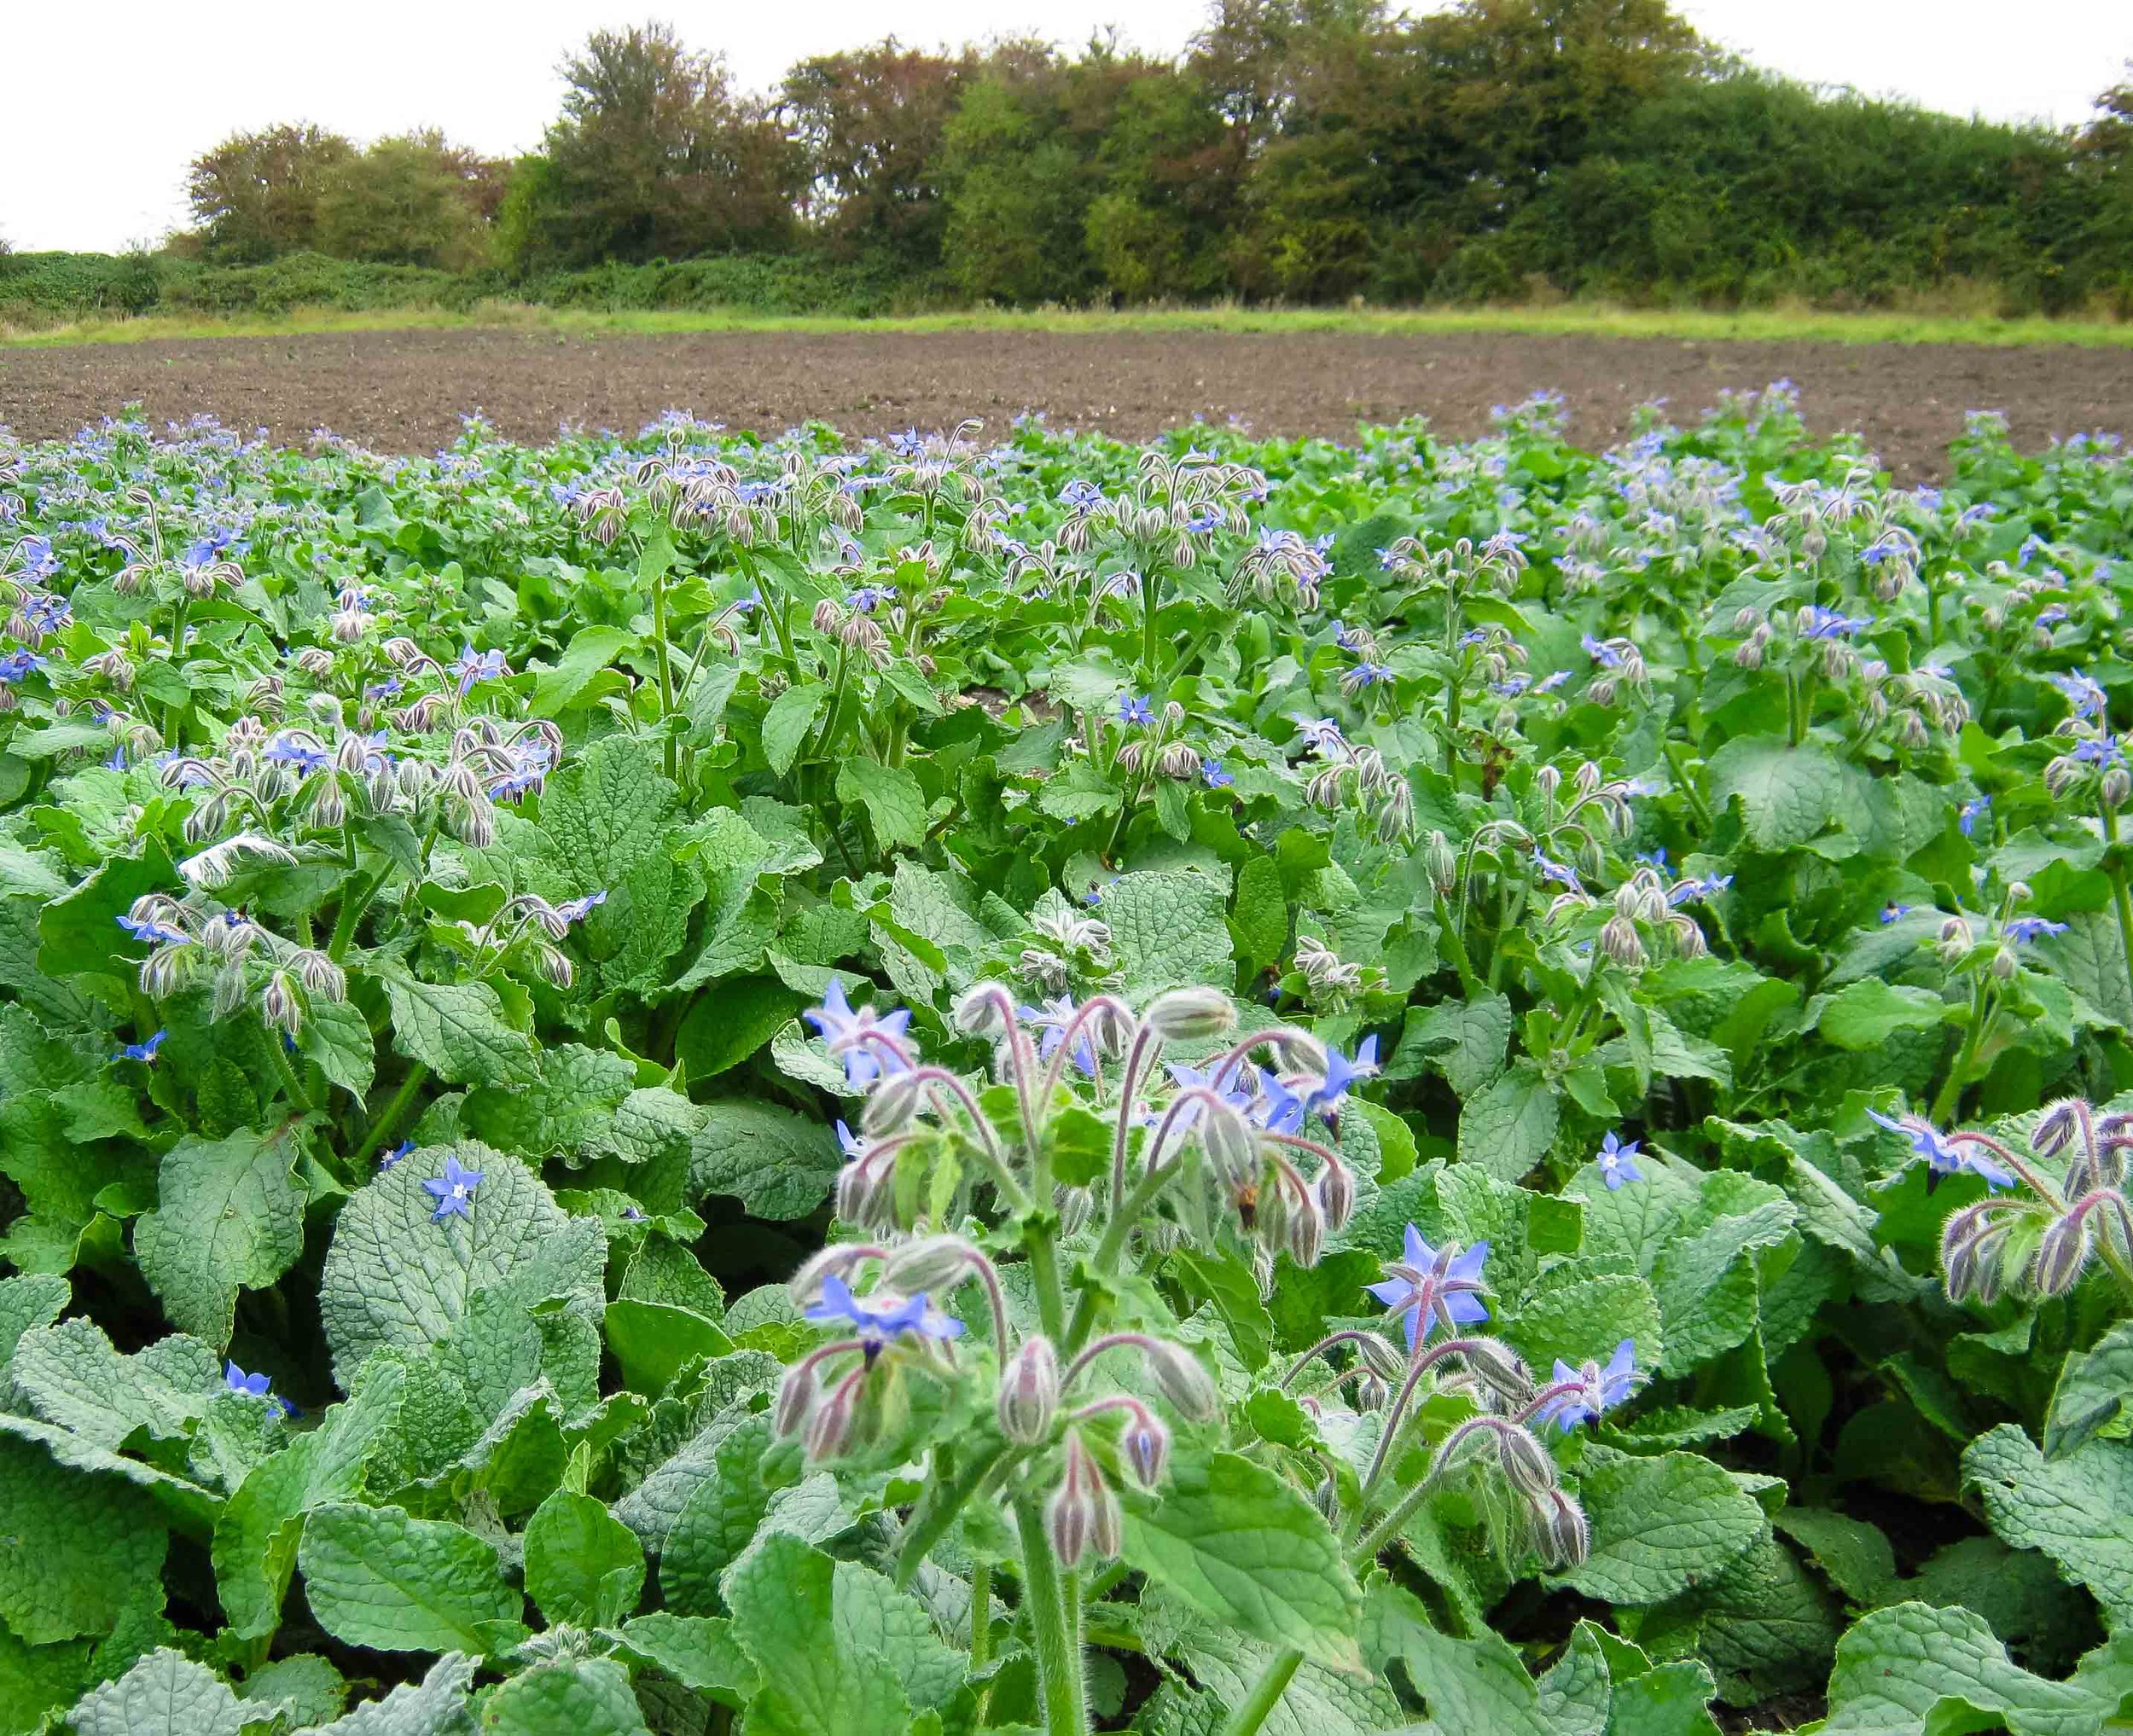 our last borage crop of the season flowering well in September